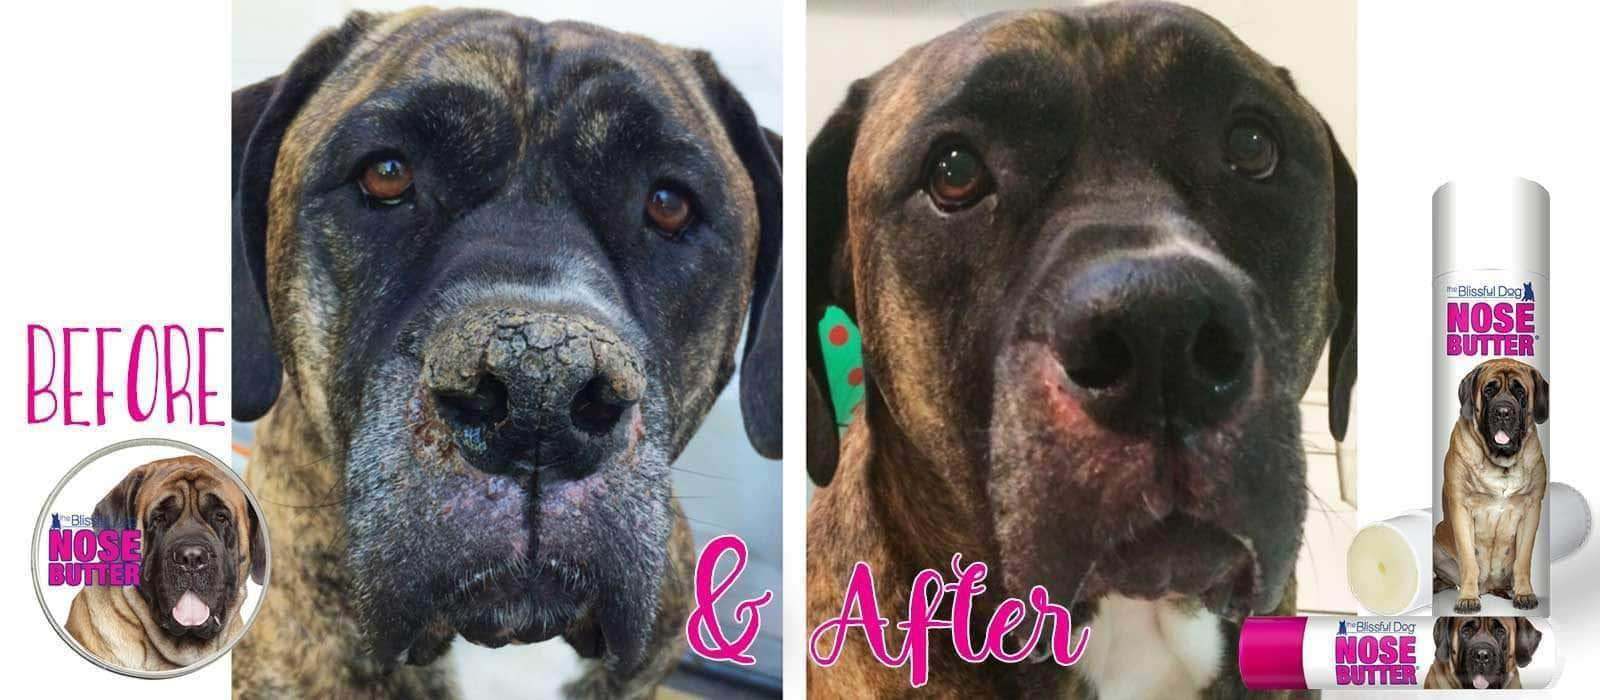 Before & After Mastiff Nose Butter